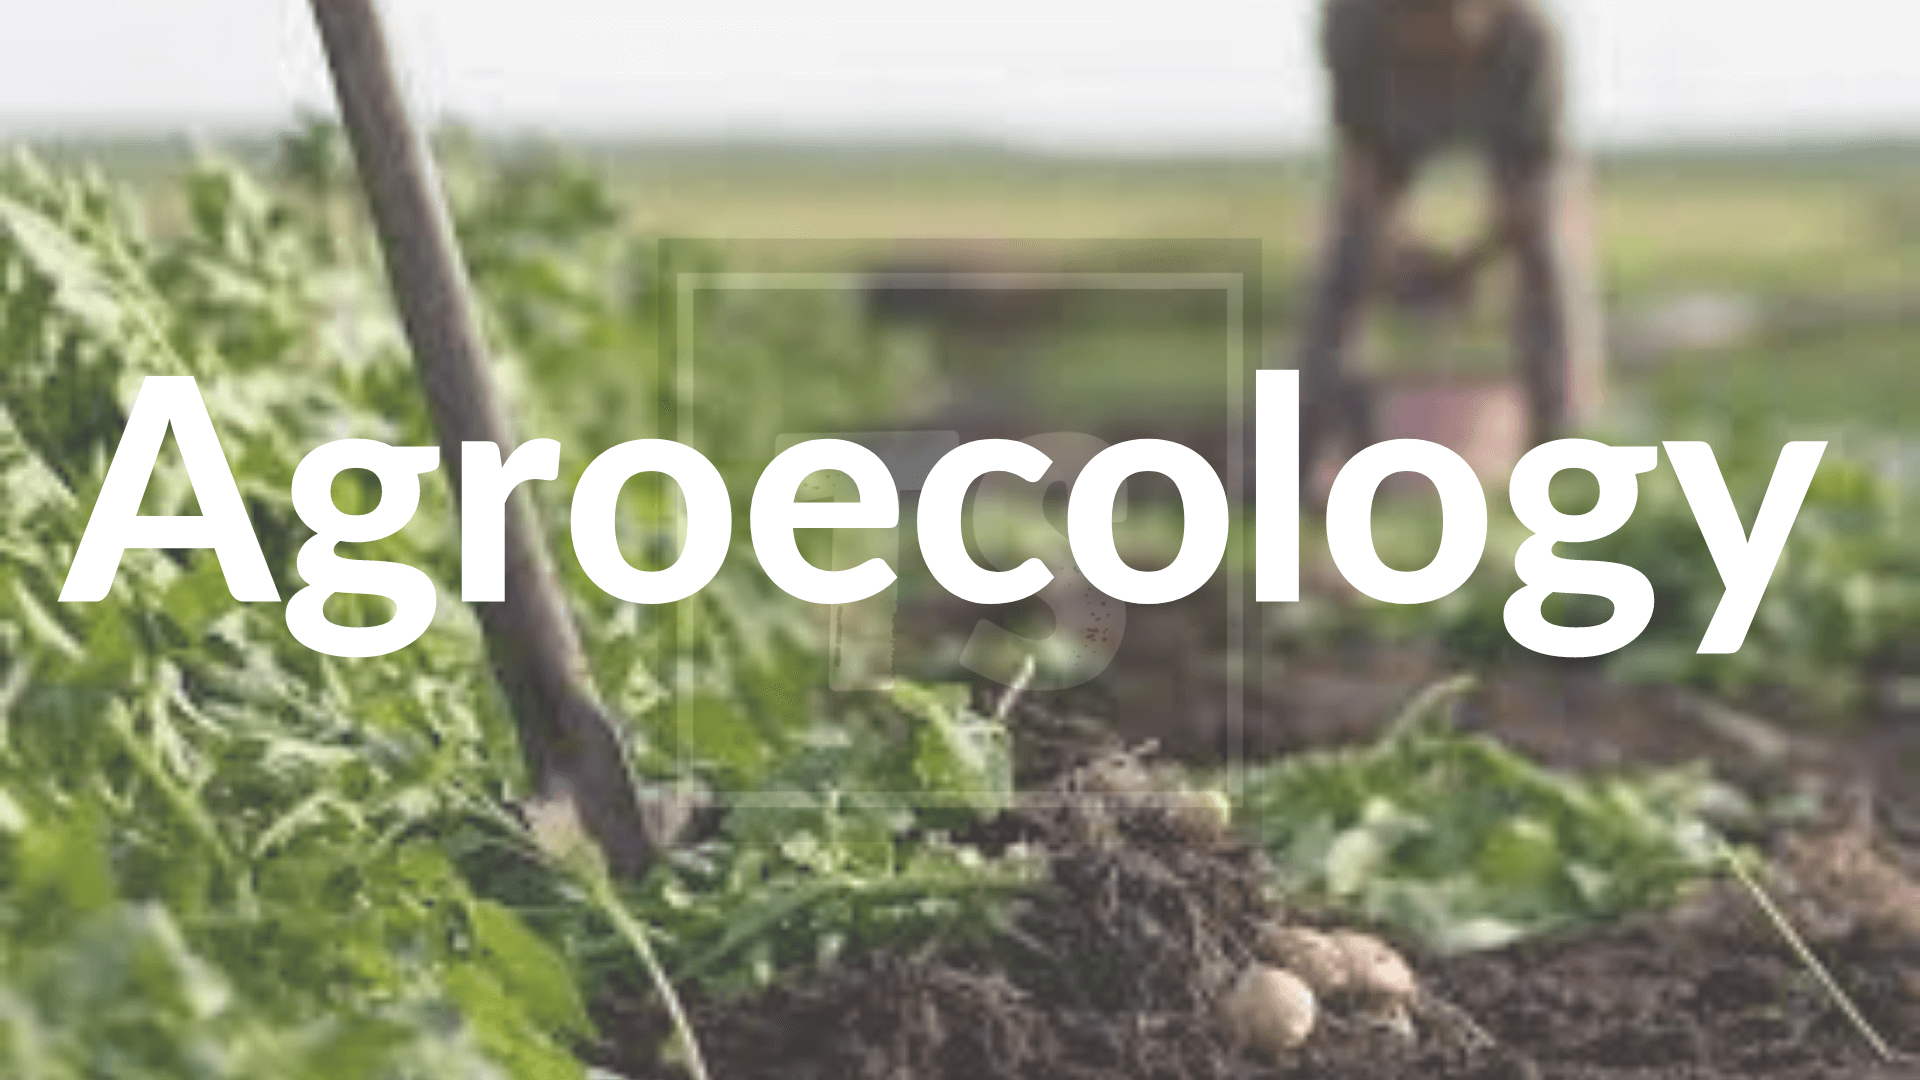 Brief Info Agroecology: Overview, Benefits, Trend